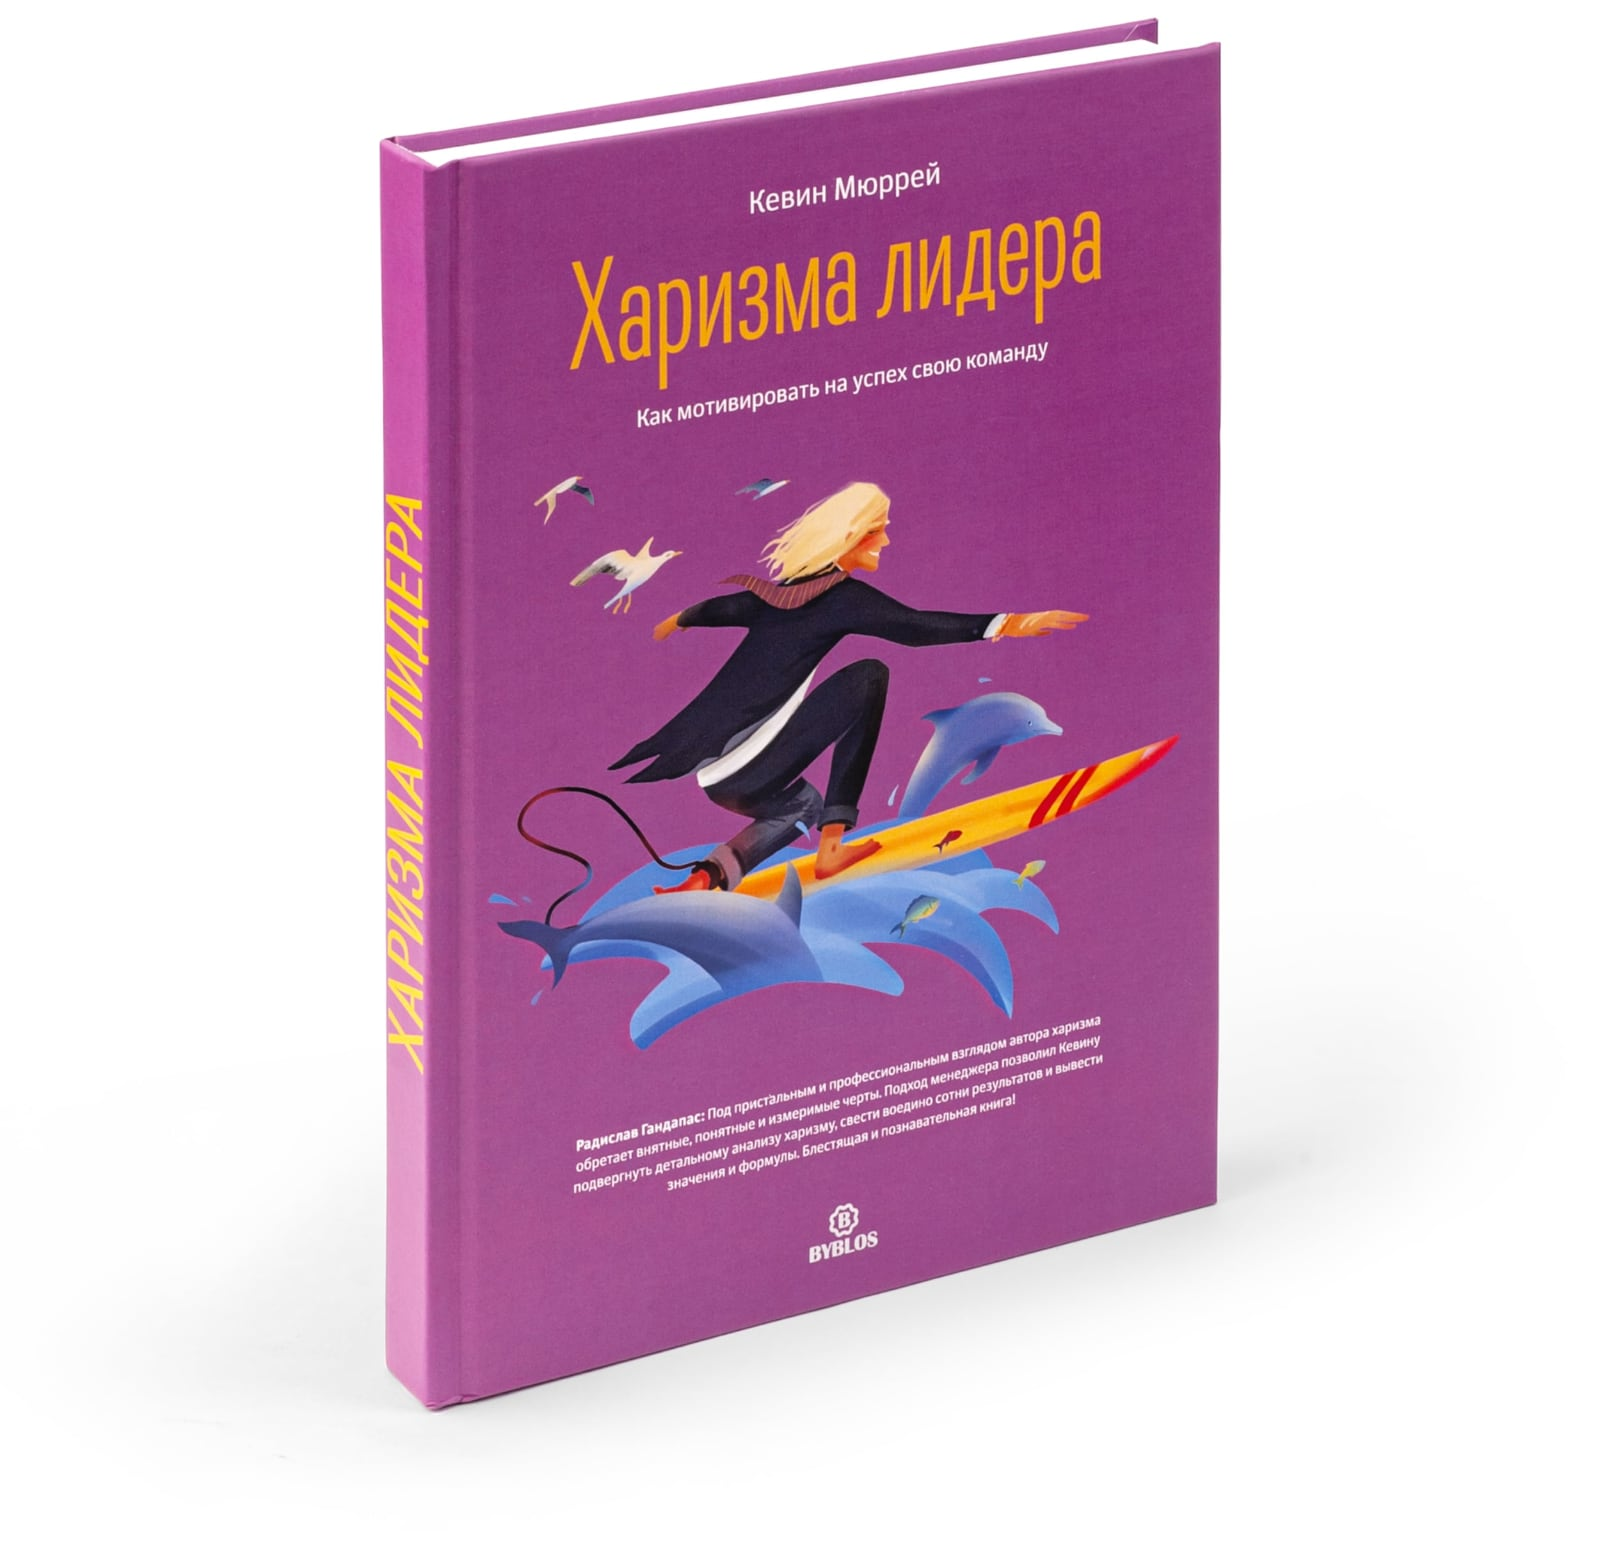 Charismatic Leadership (in Russian)